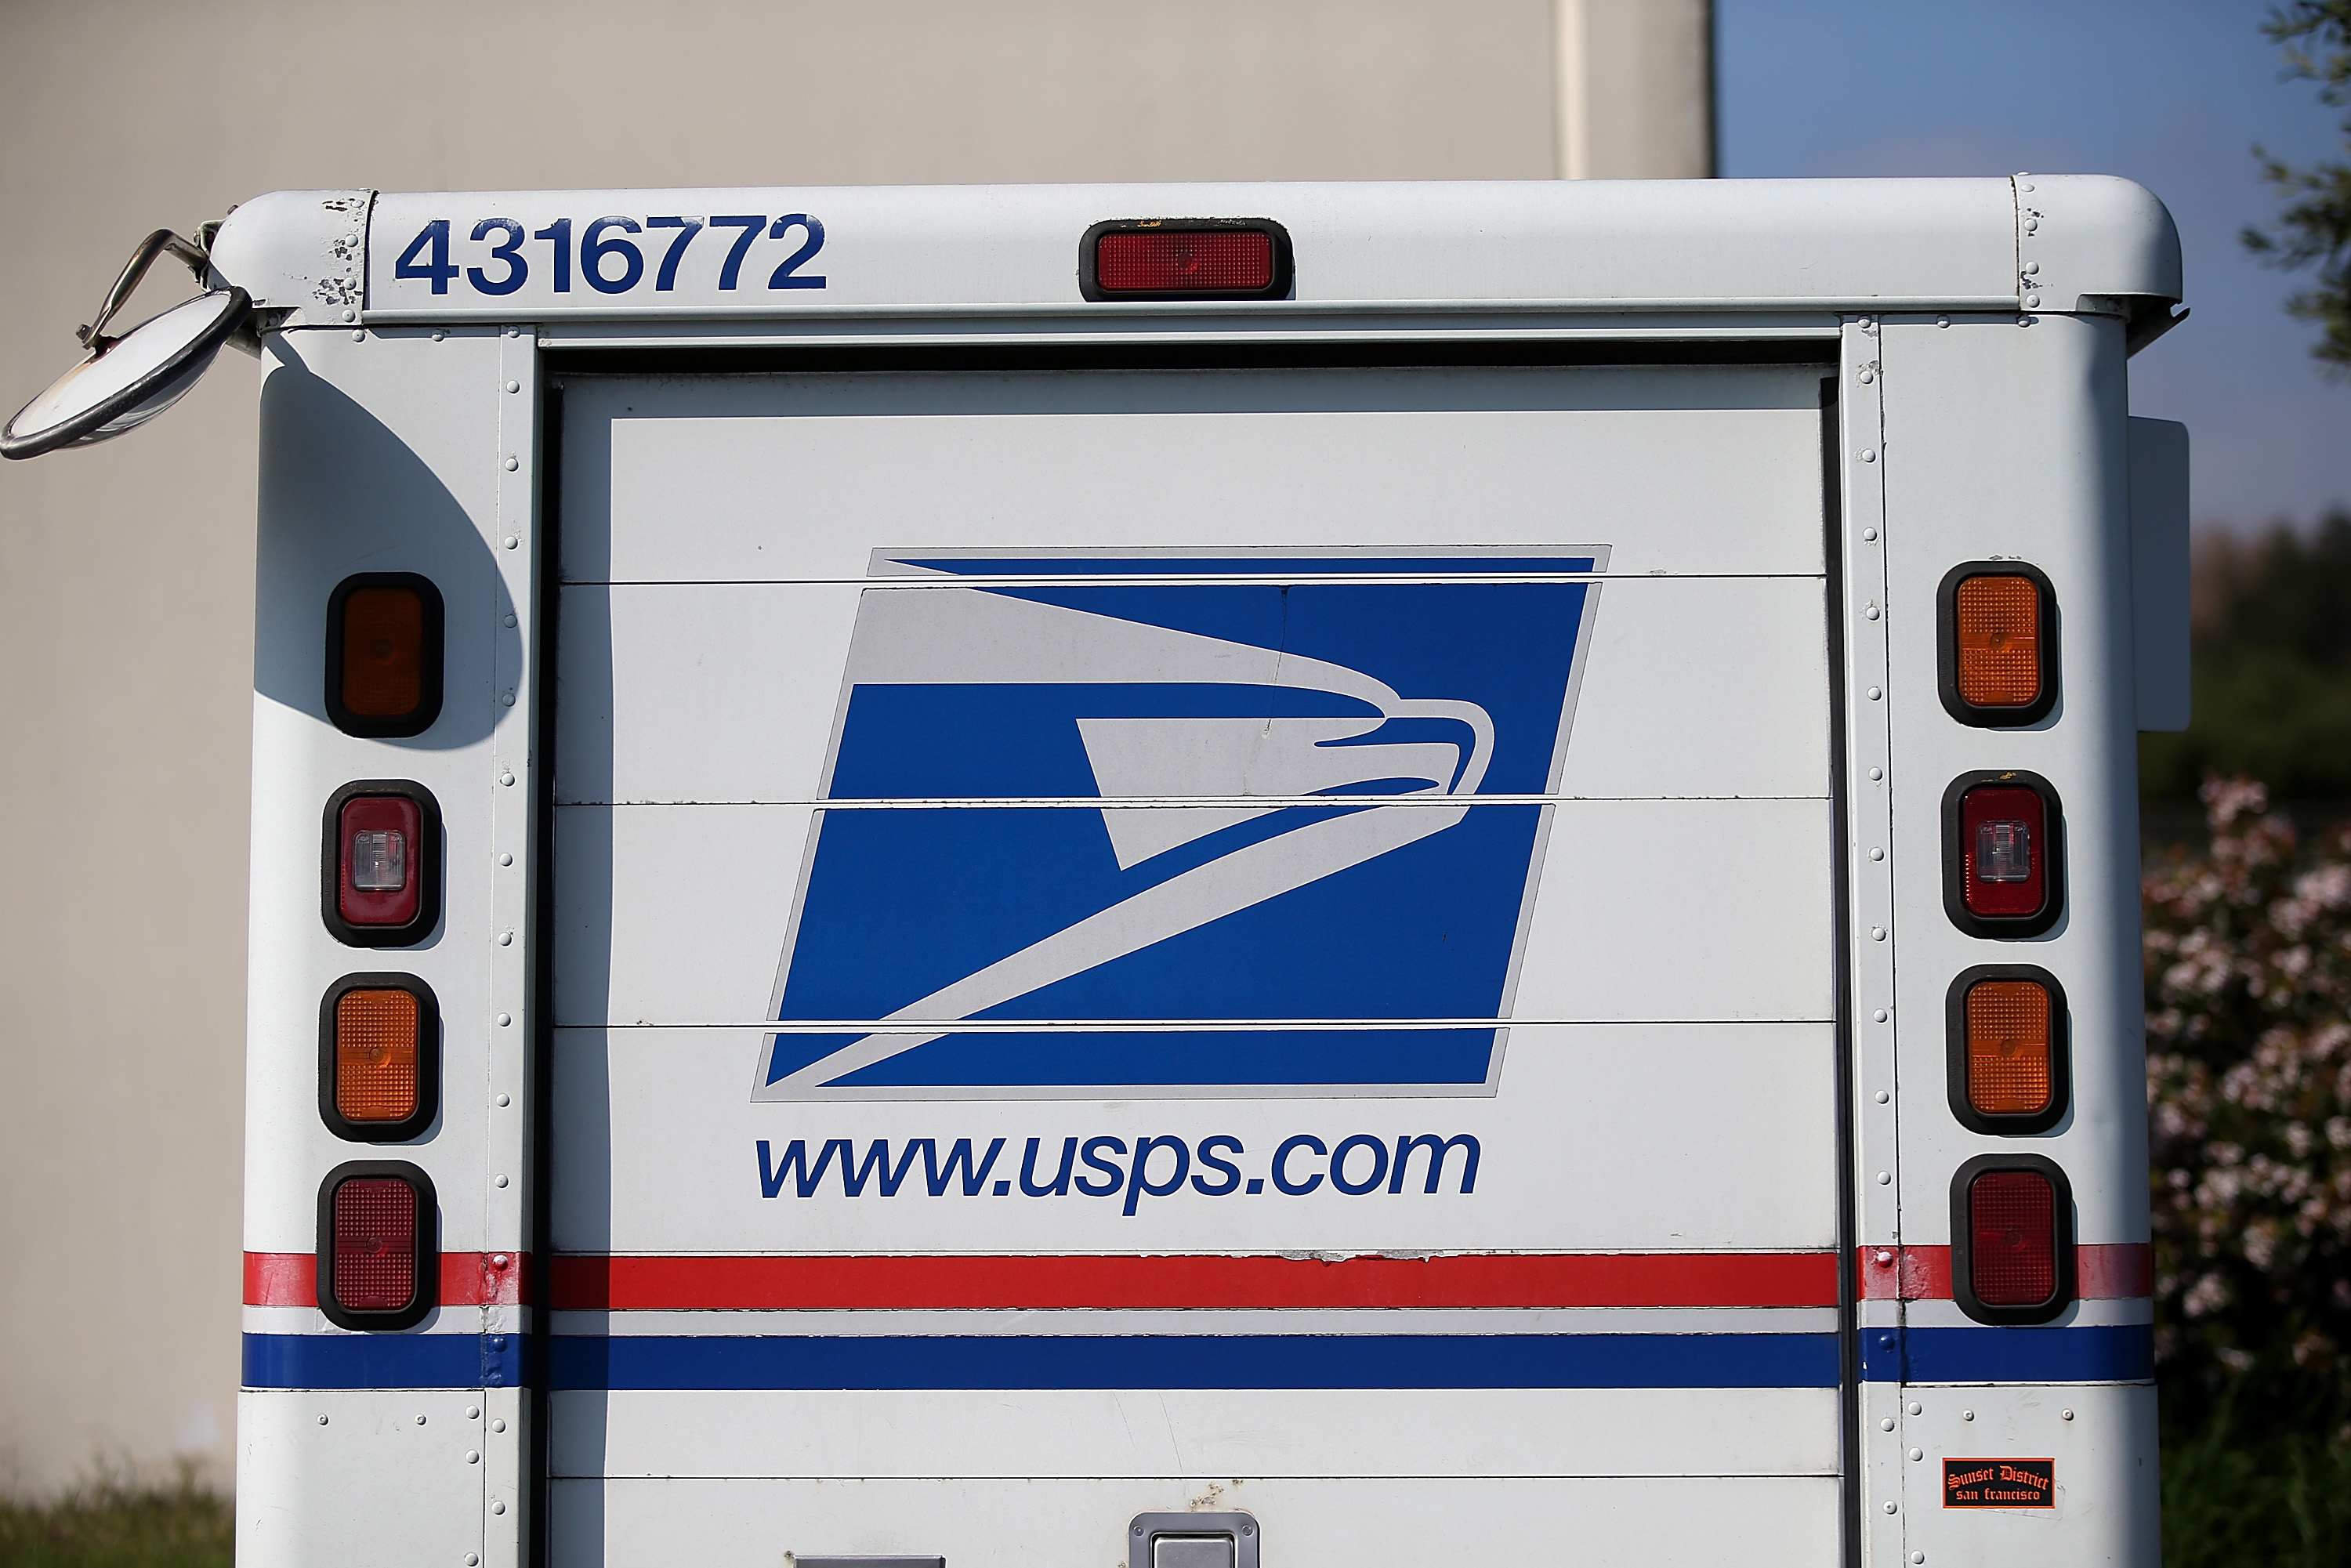 Postal Service Will Email You Pictures Of Your Mail Time